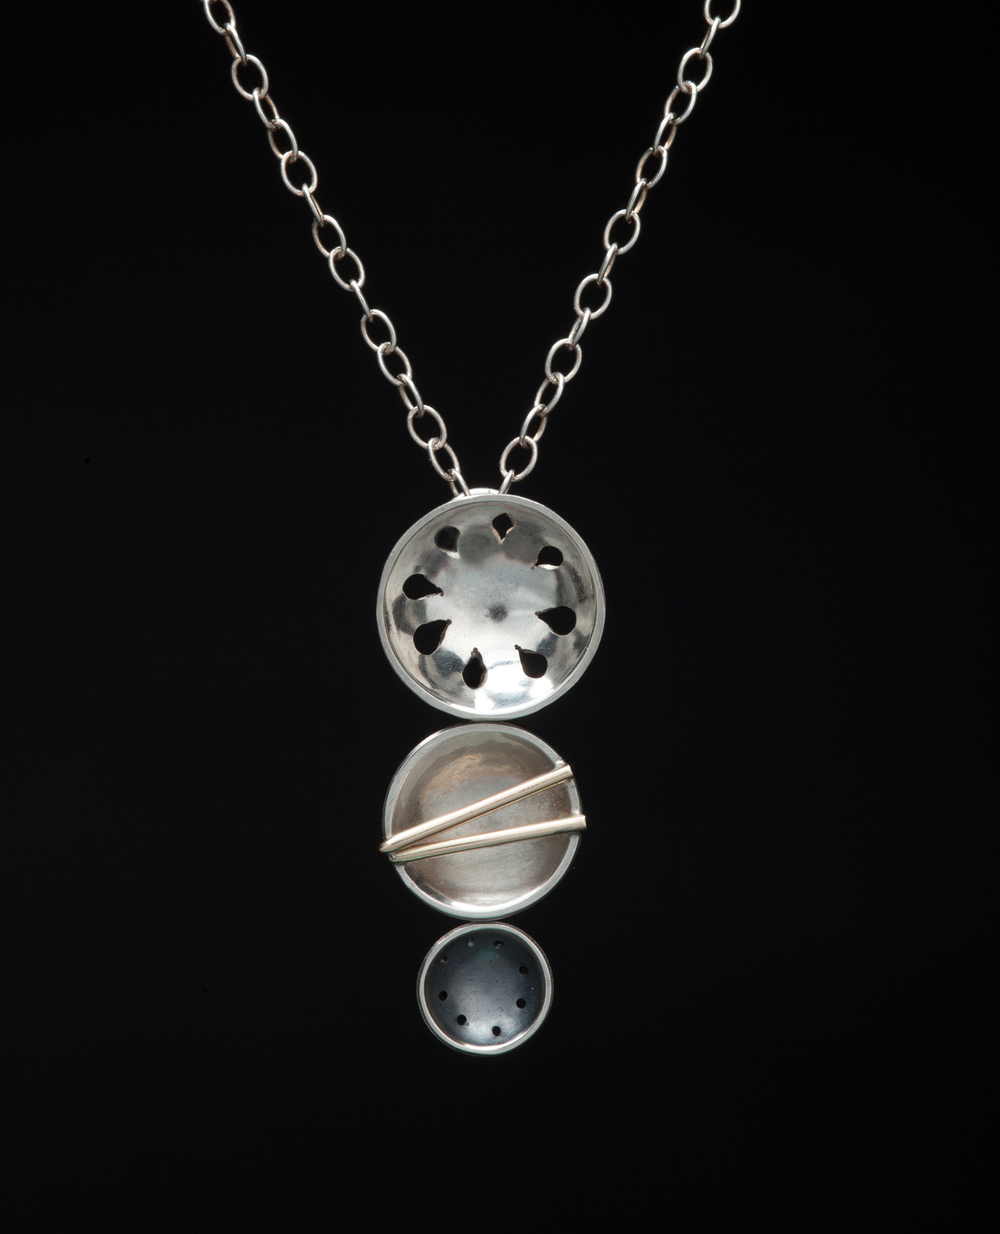 Three Miniature Bowls Necklace